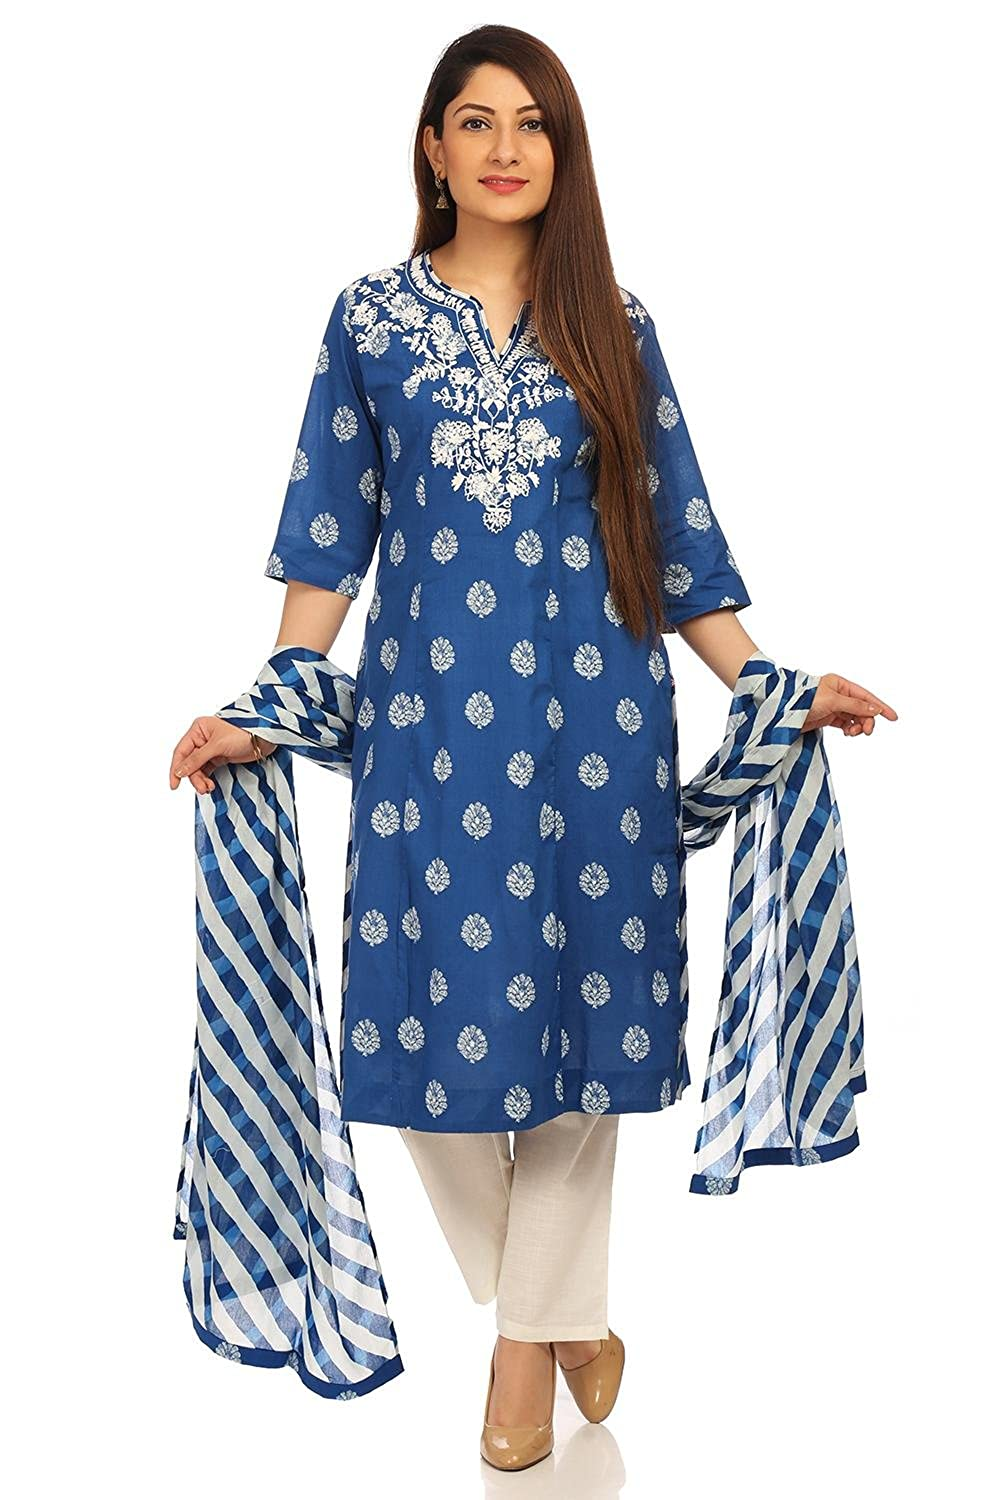 97a49c684 biba women s straight salwar suit at Best Price ₹ 2099 with many ...